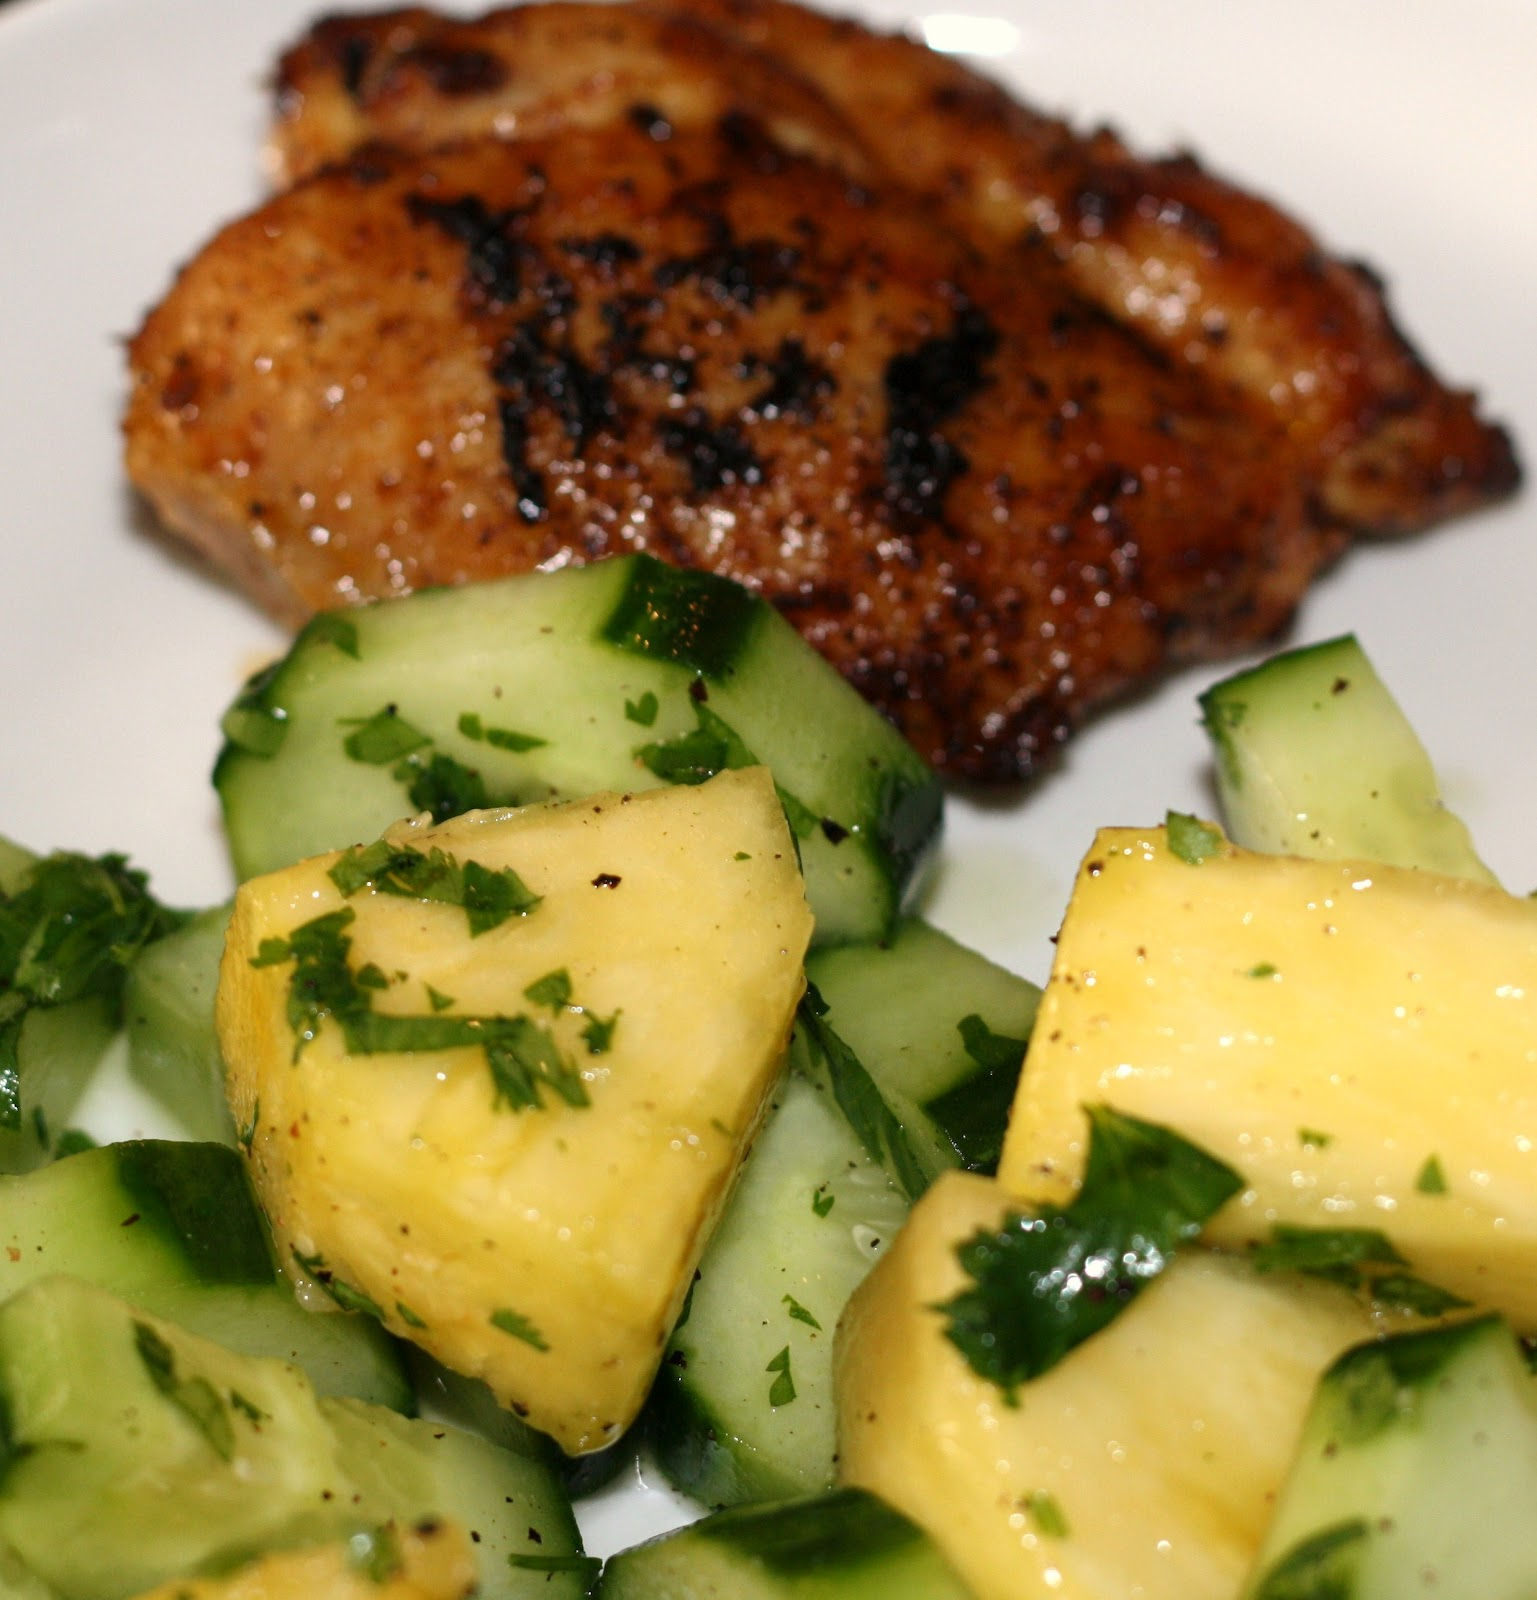 ... ?: chili-lime chicken with pineapple-cucumber salad... 25 minutes